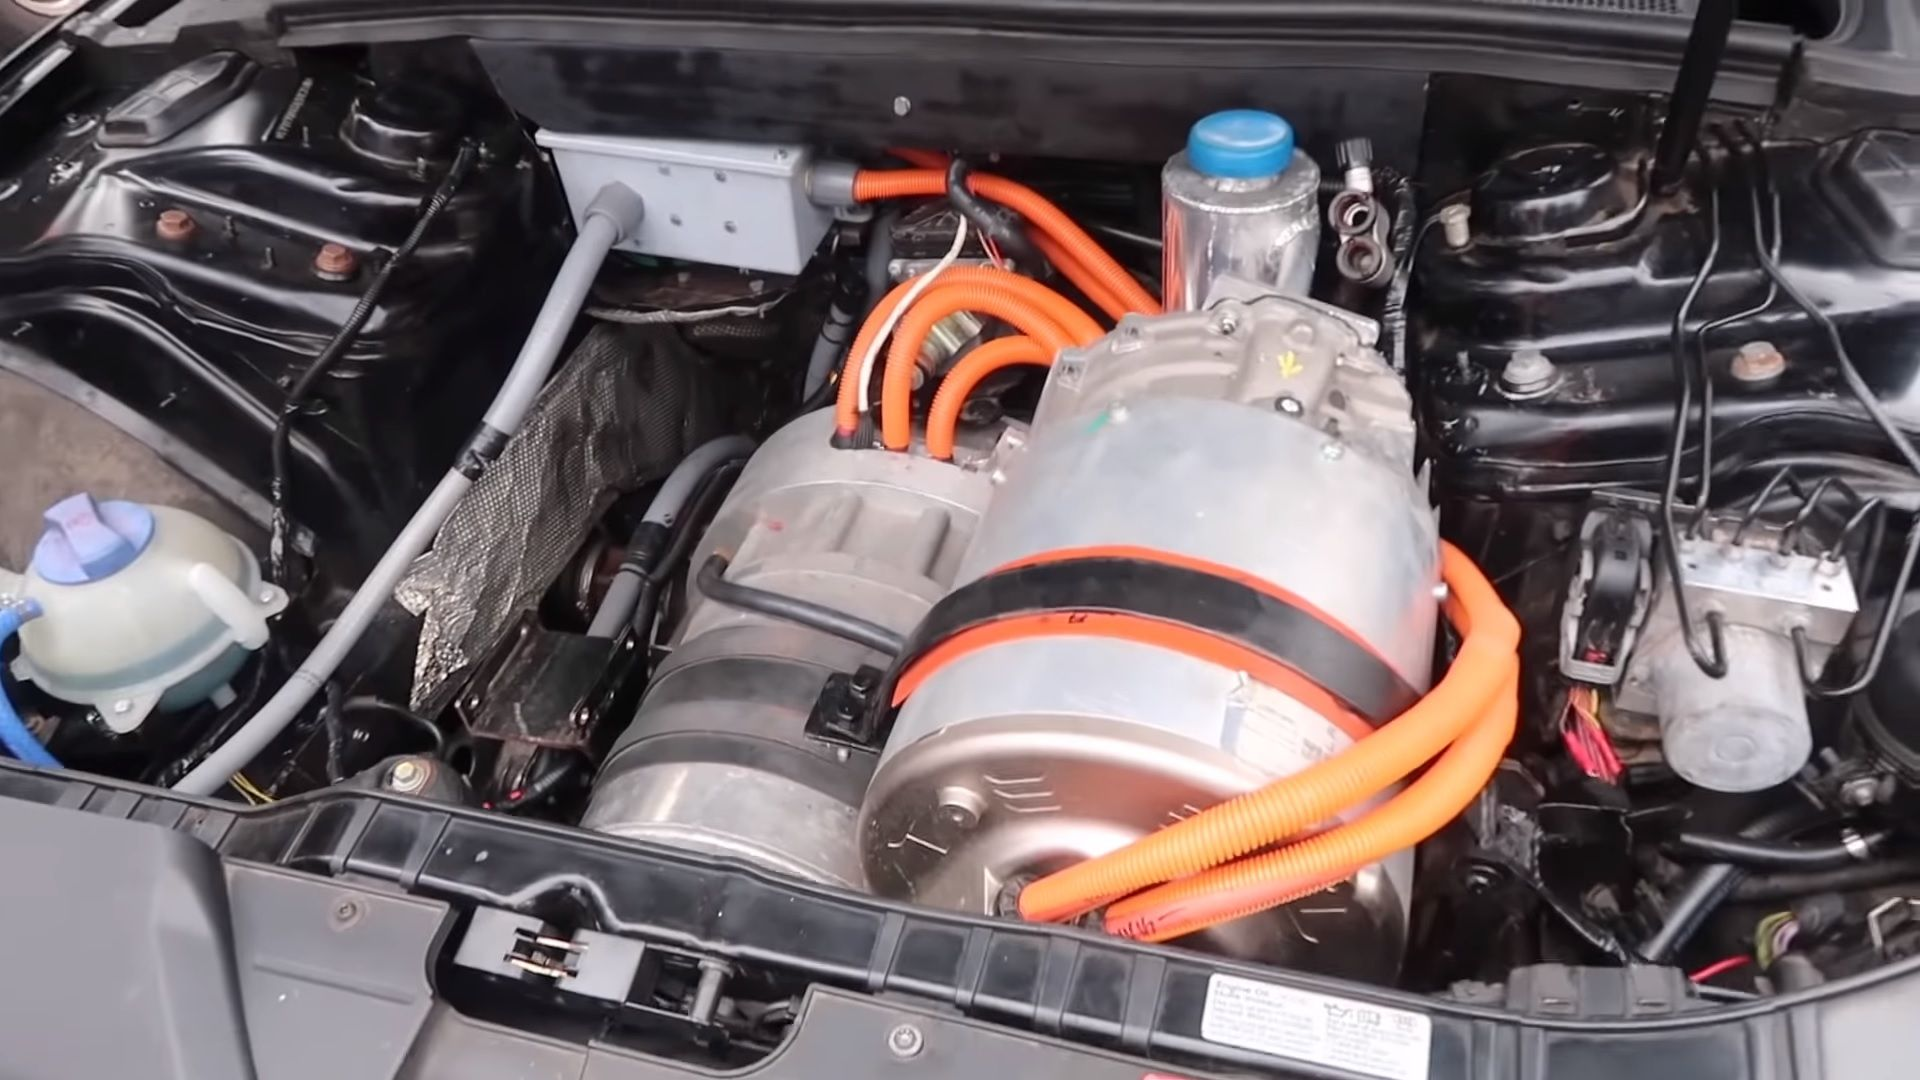 Tesla Powertrain And Batteries Completely Transform This Audi Rs5 Top Speed Audi Rs5 Audi Tesla